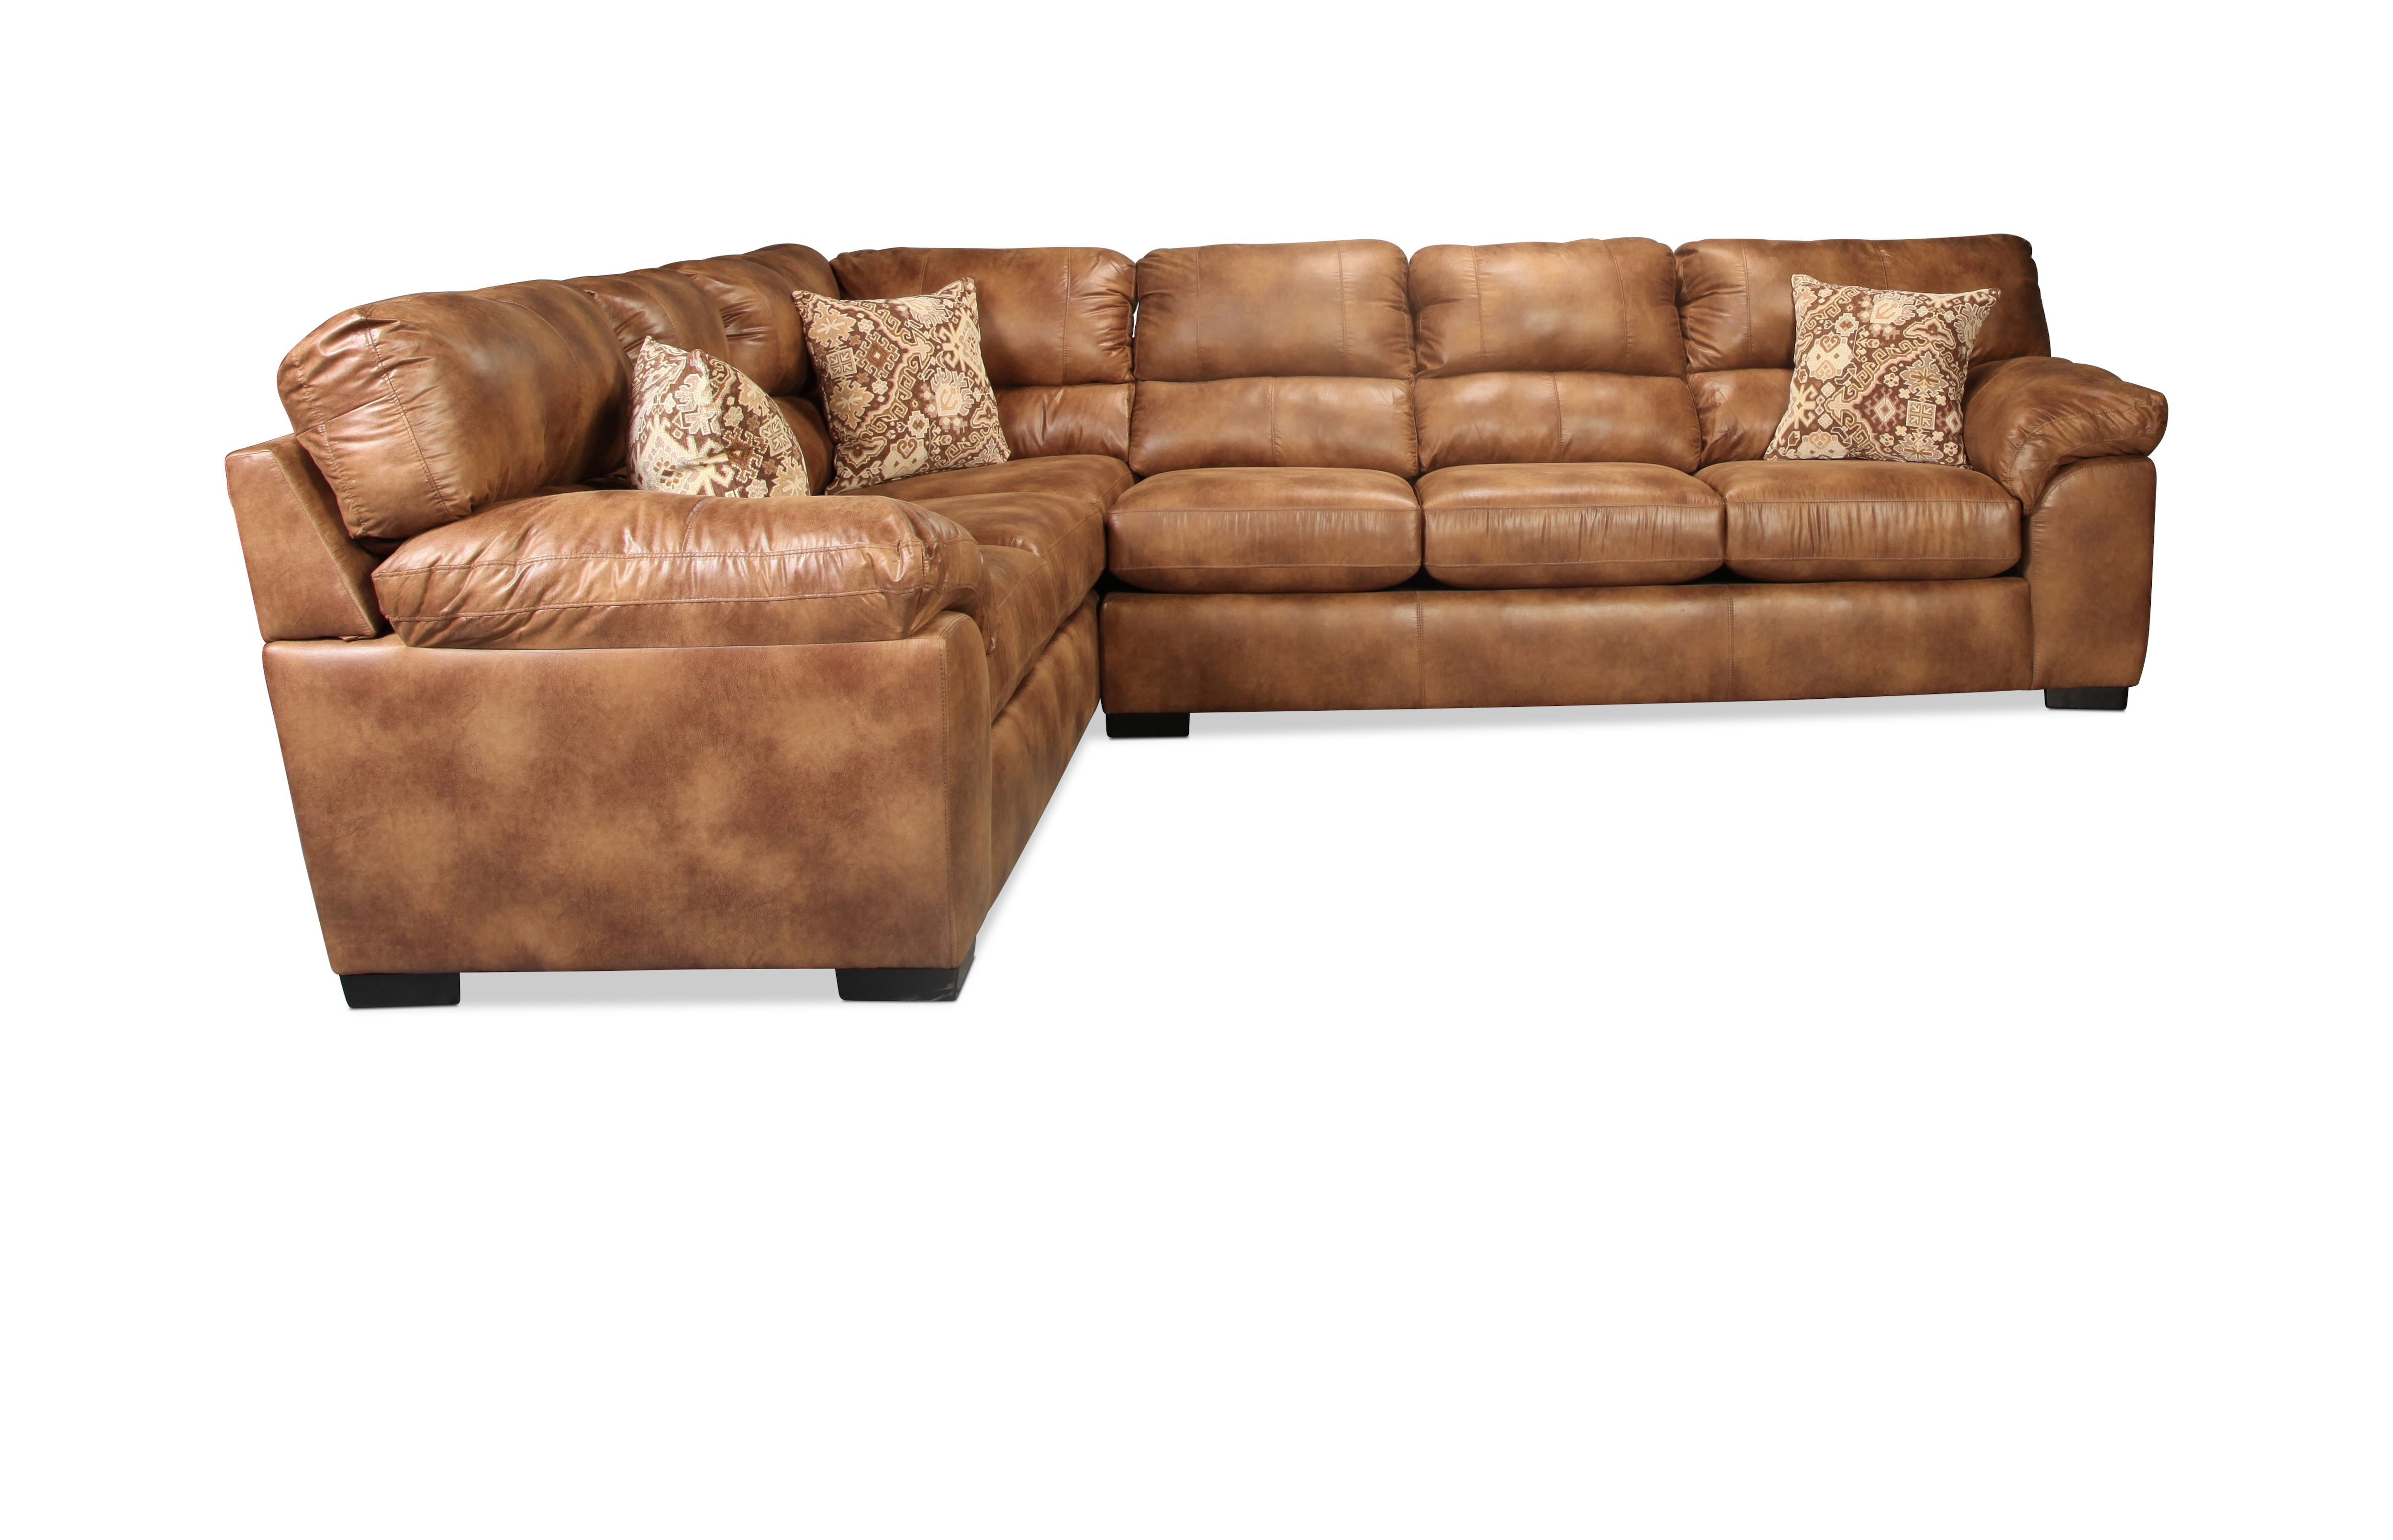 Provo 2-Piece Sectional - Canyon